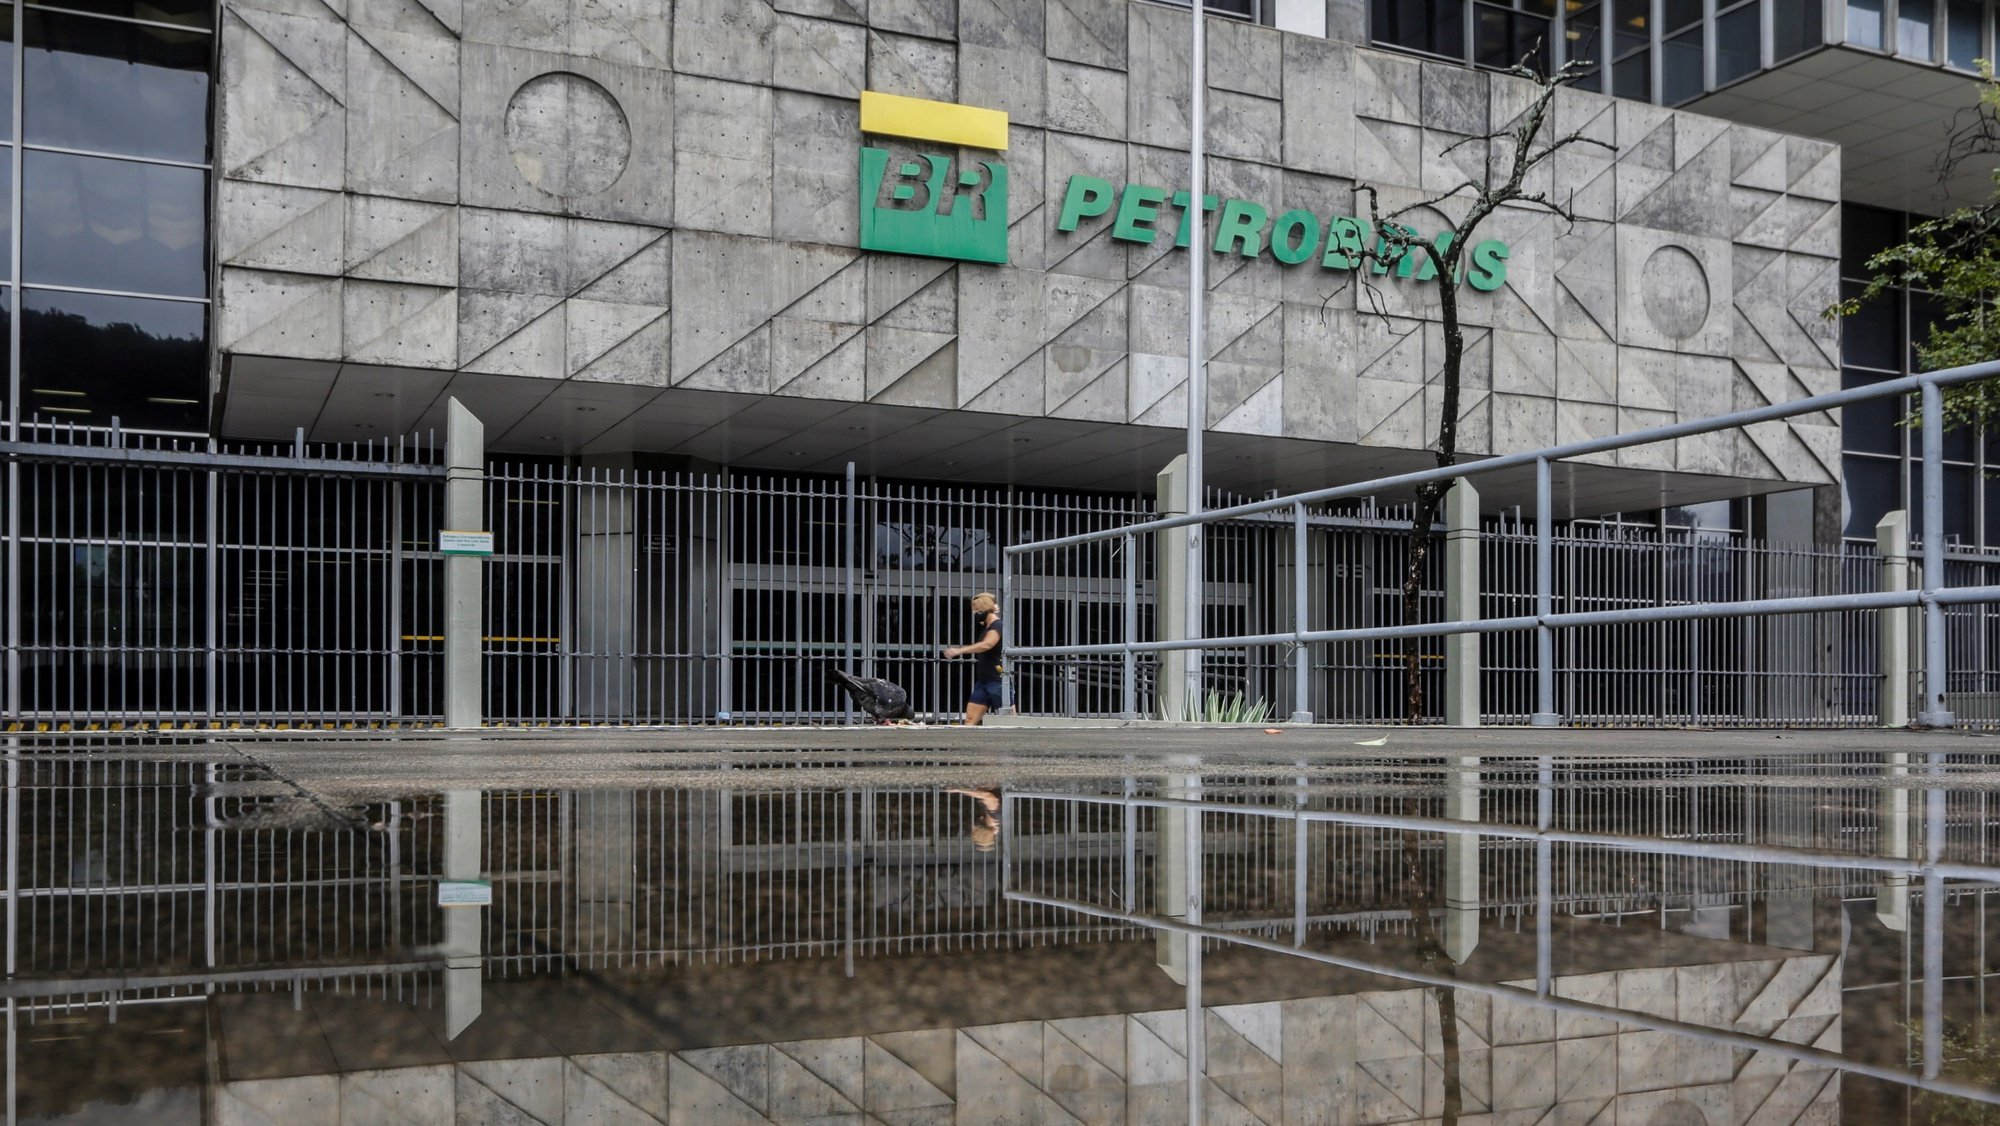 epa09030272 A person walks in front of the Petrobras headquarters in Rio de Janeiro, Brazil, 22 February 2021. The Brazilian president has opened a new crisis in Petrobras by announcing a retired Army general as the new president of the state oil company, which sank in the stock market, and raised doubts about his commitment to economic liberalism.  EPA/Antonio Lacerda